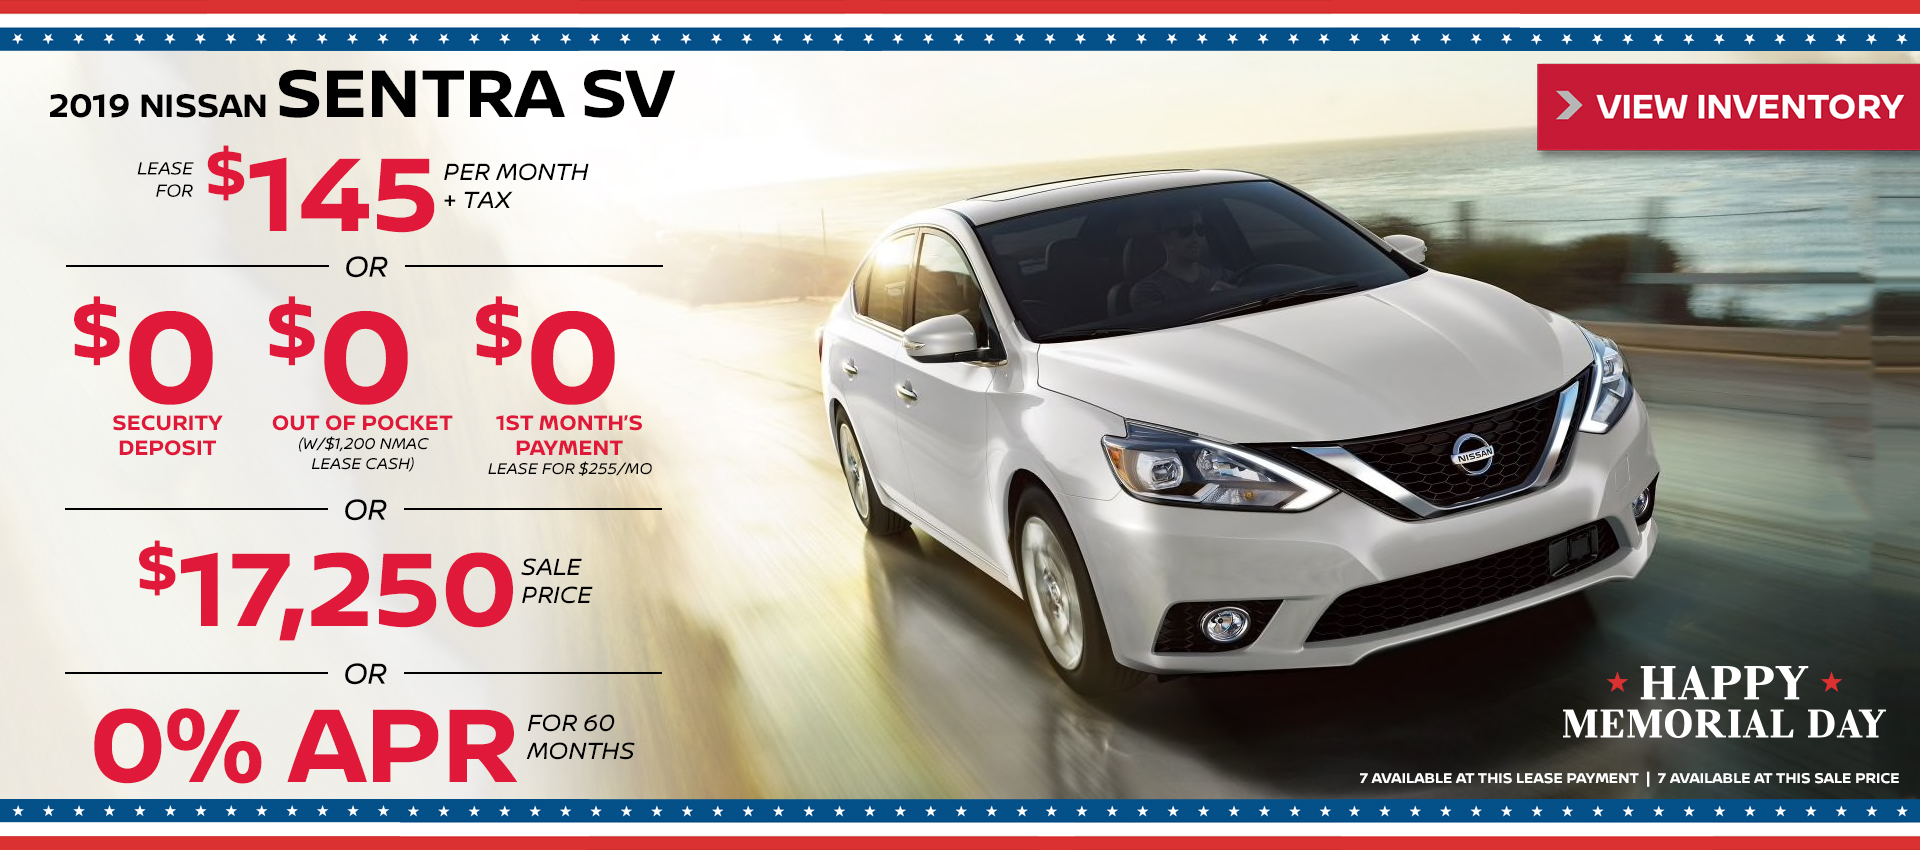 Mossy Nissan - Sentra $145 Lease HP